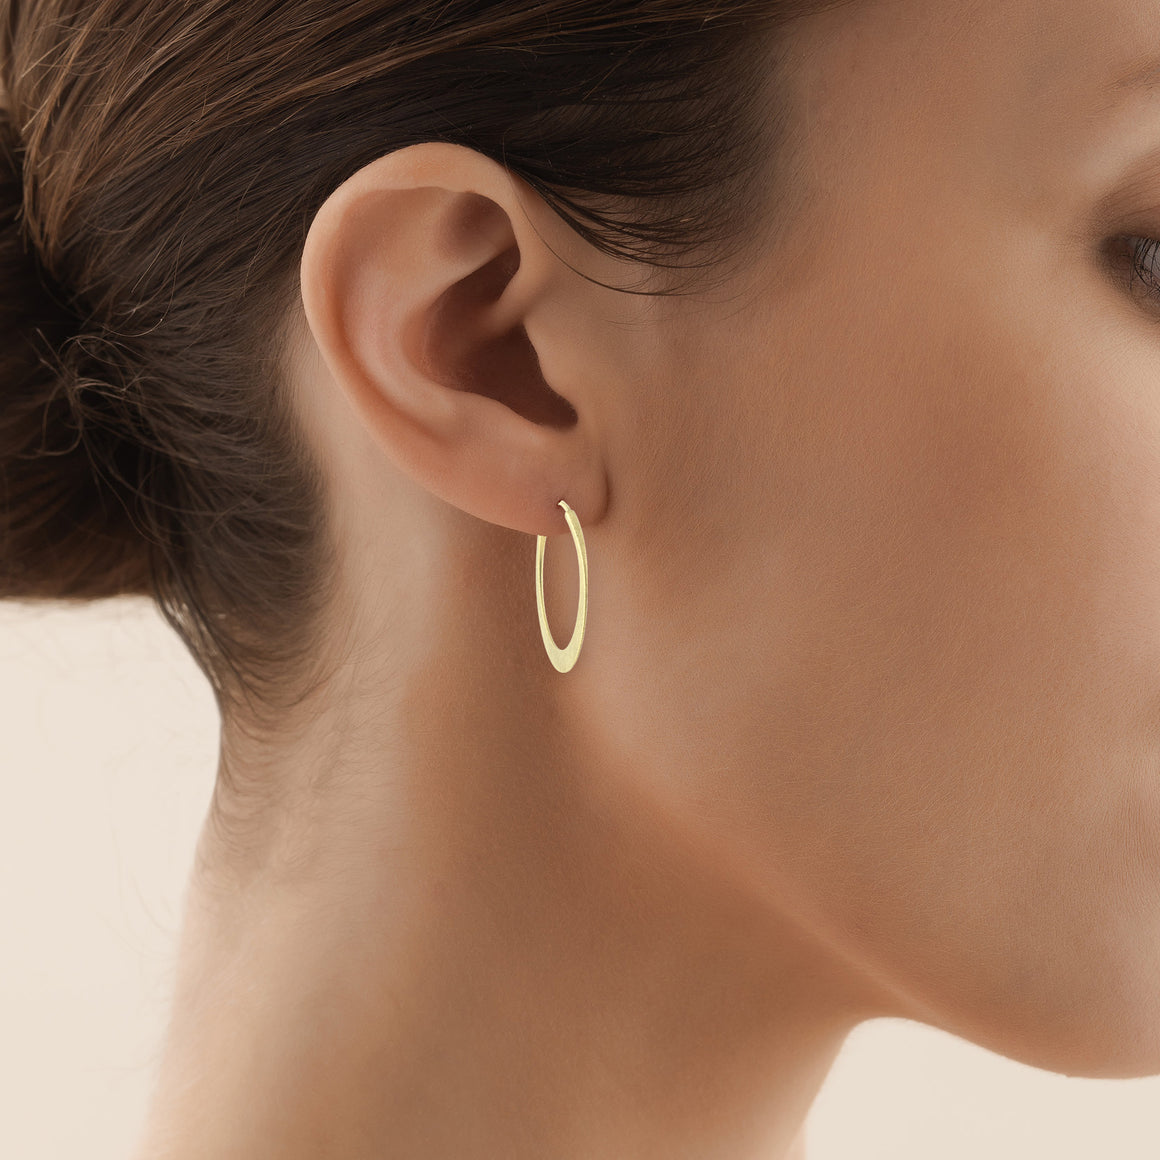 Endless Hoop Earrings in Polished Yellow Gold - 1 inch